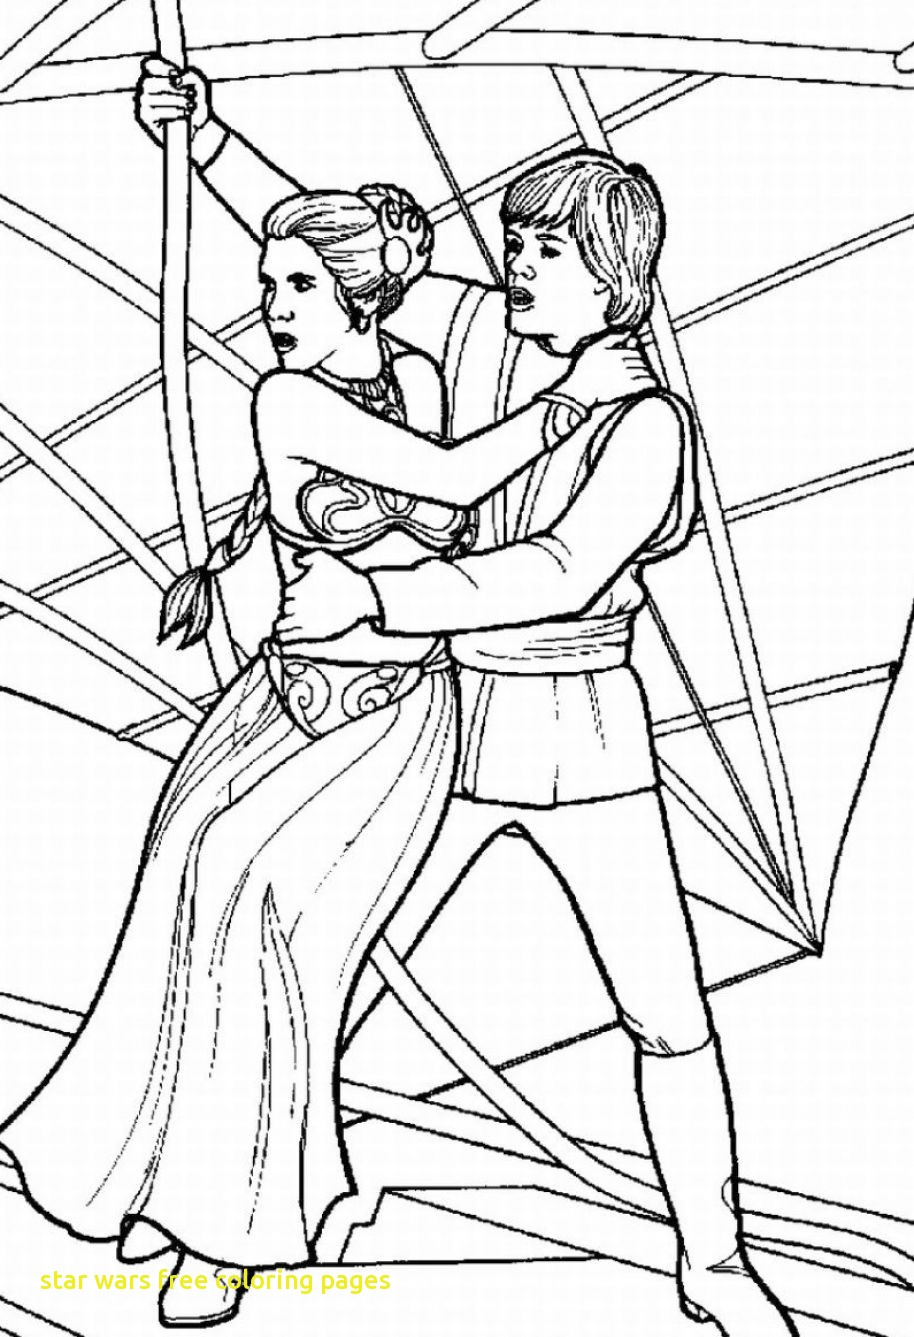 Star Wars Coloring Pages Free Printable and Capricus Download Of Fresh Star Wars Coloring Pages to Print